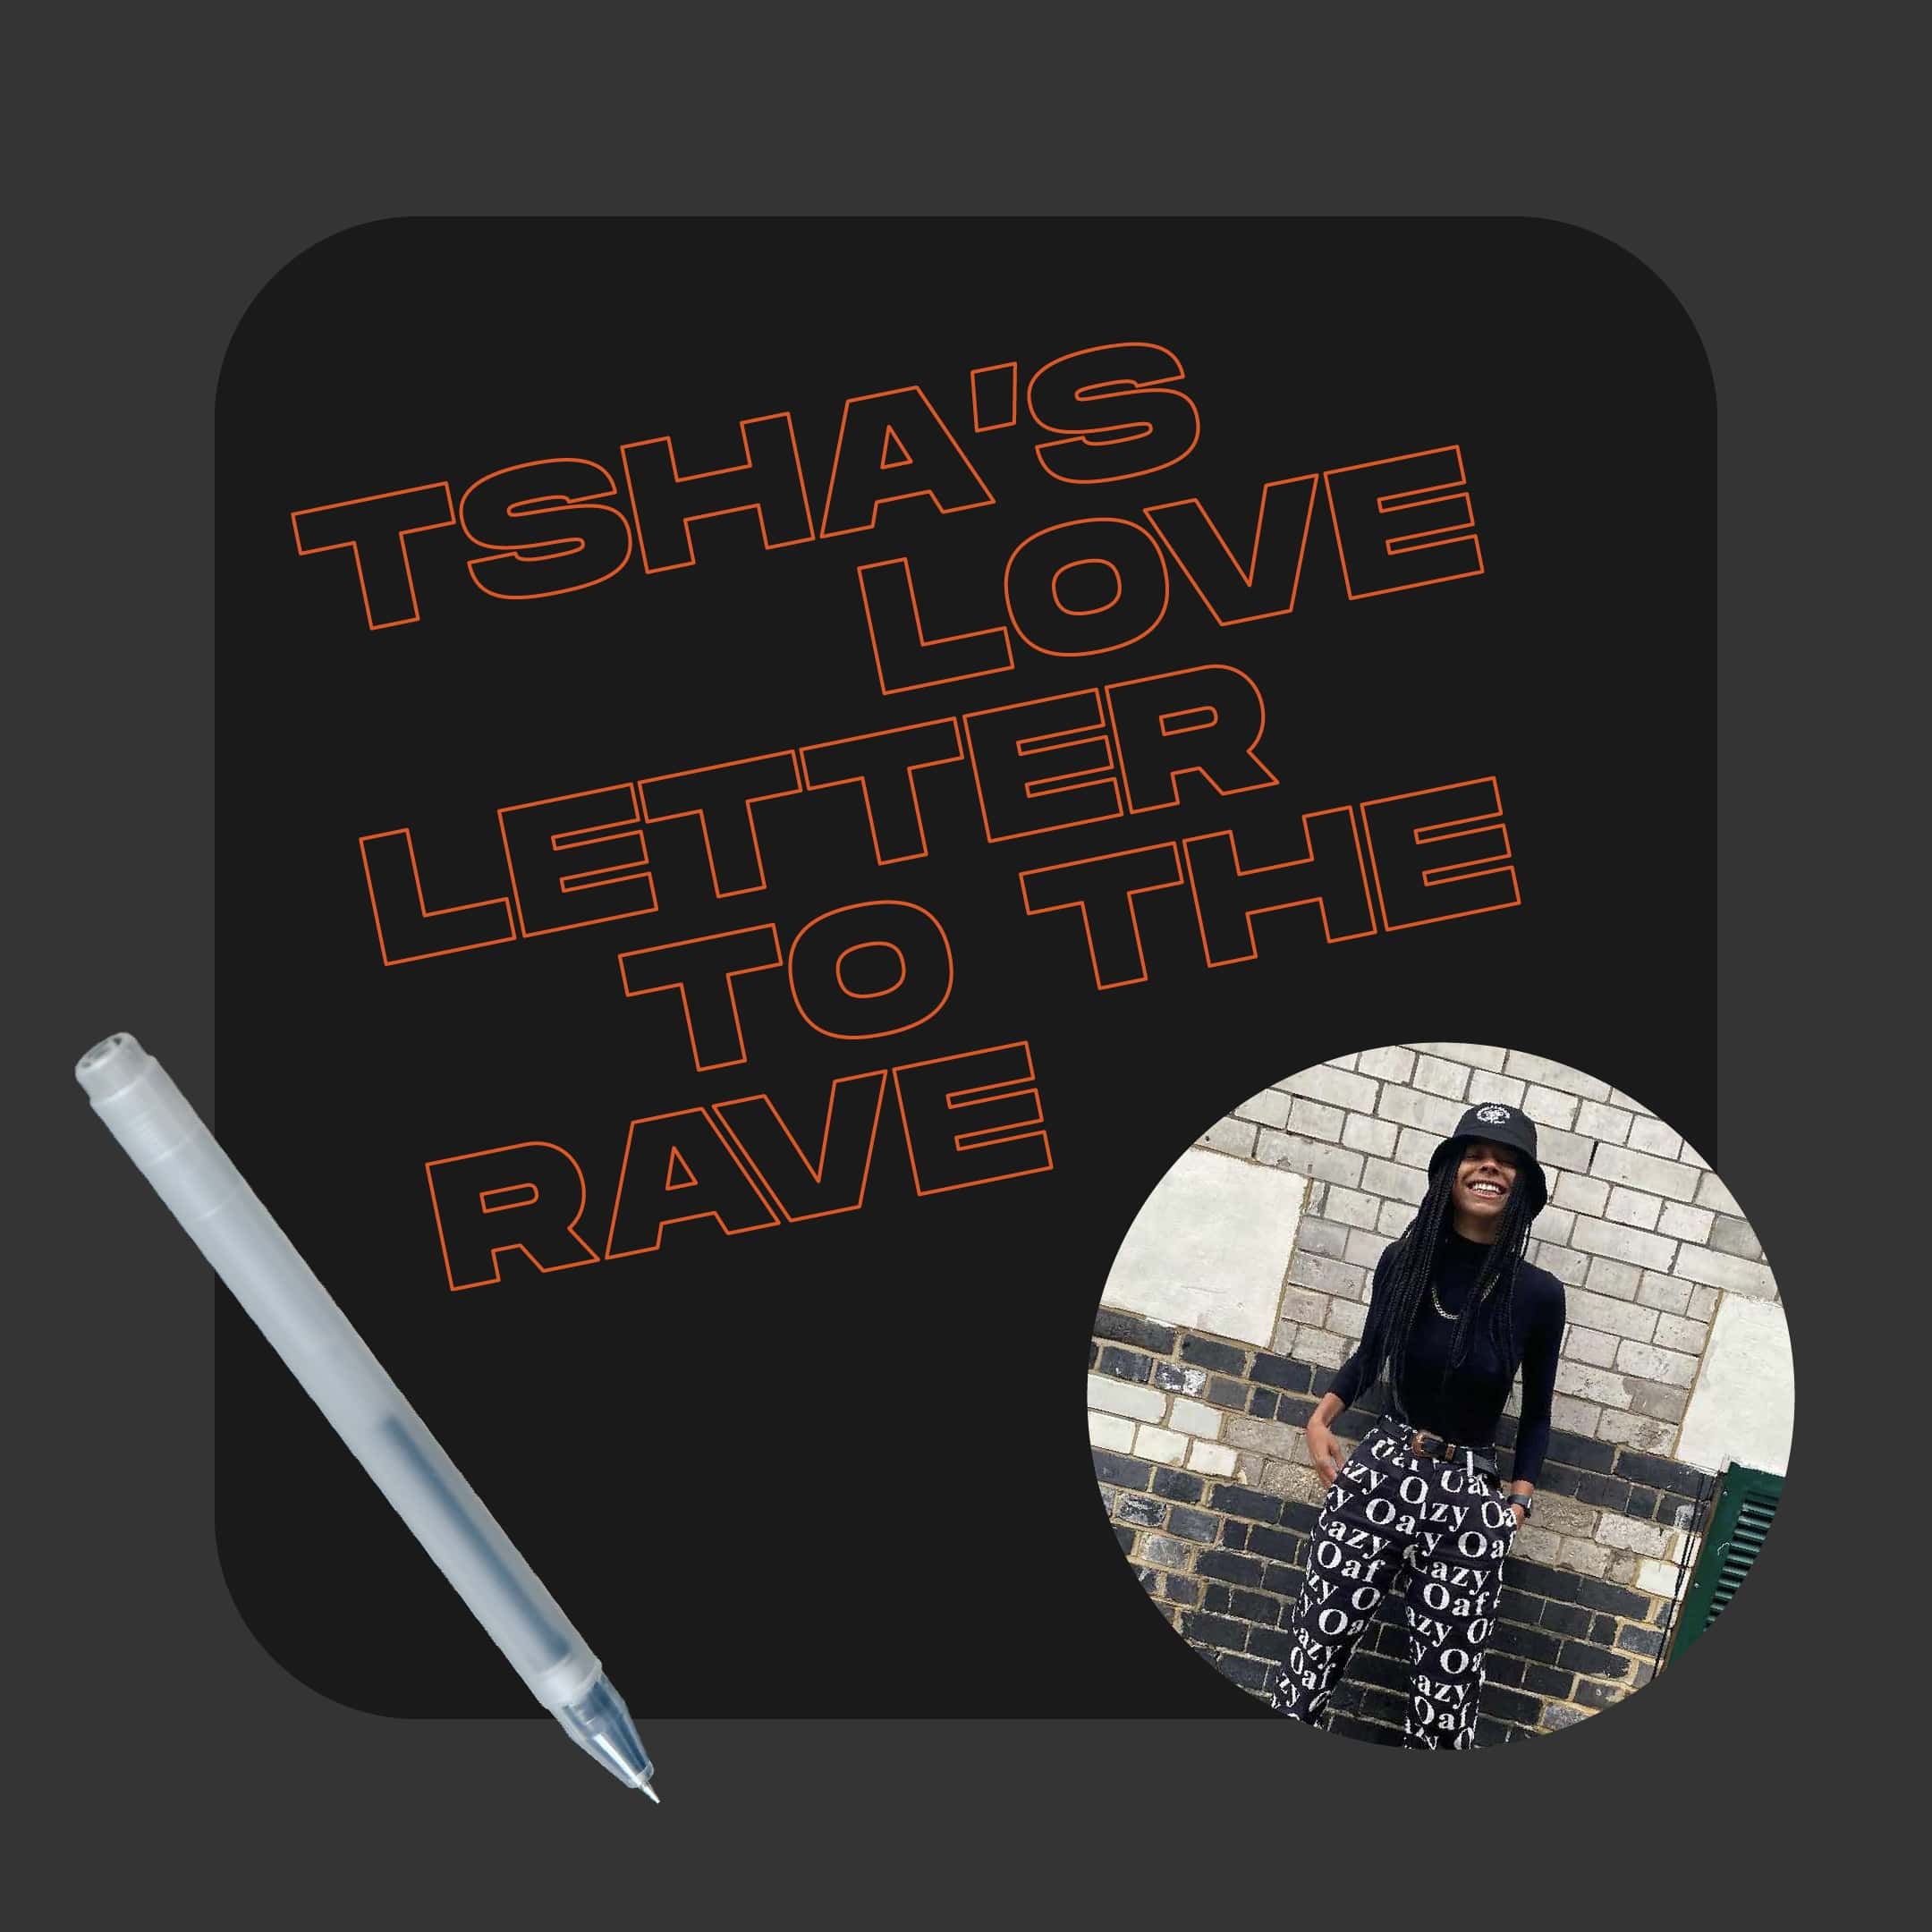 Tsha's Love Letter To The Rave